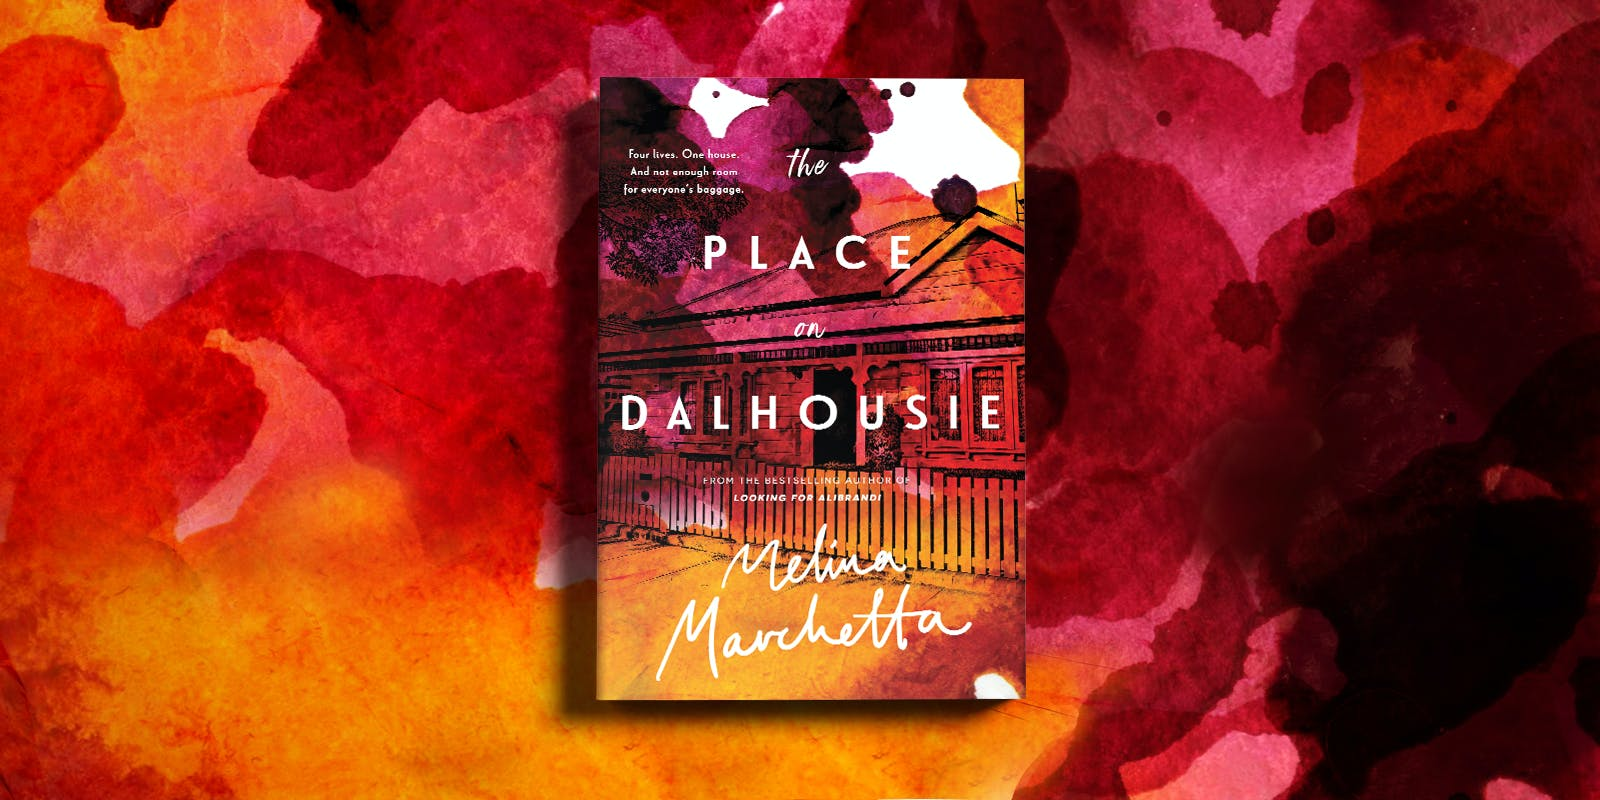 The Place on Dalhousie book club notes